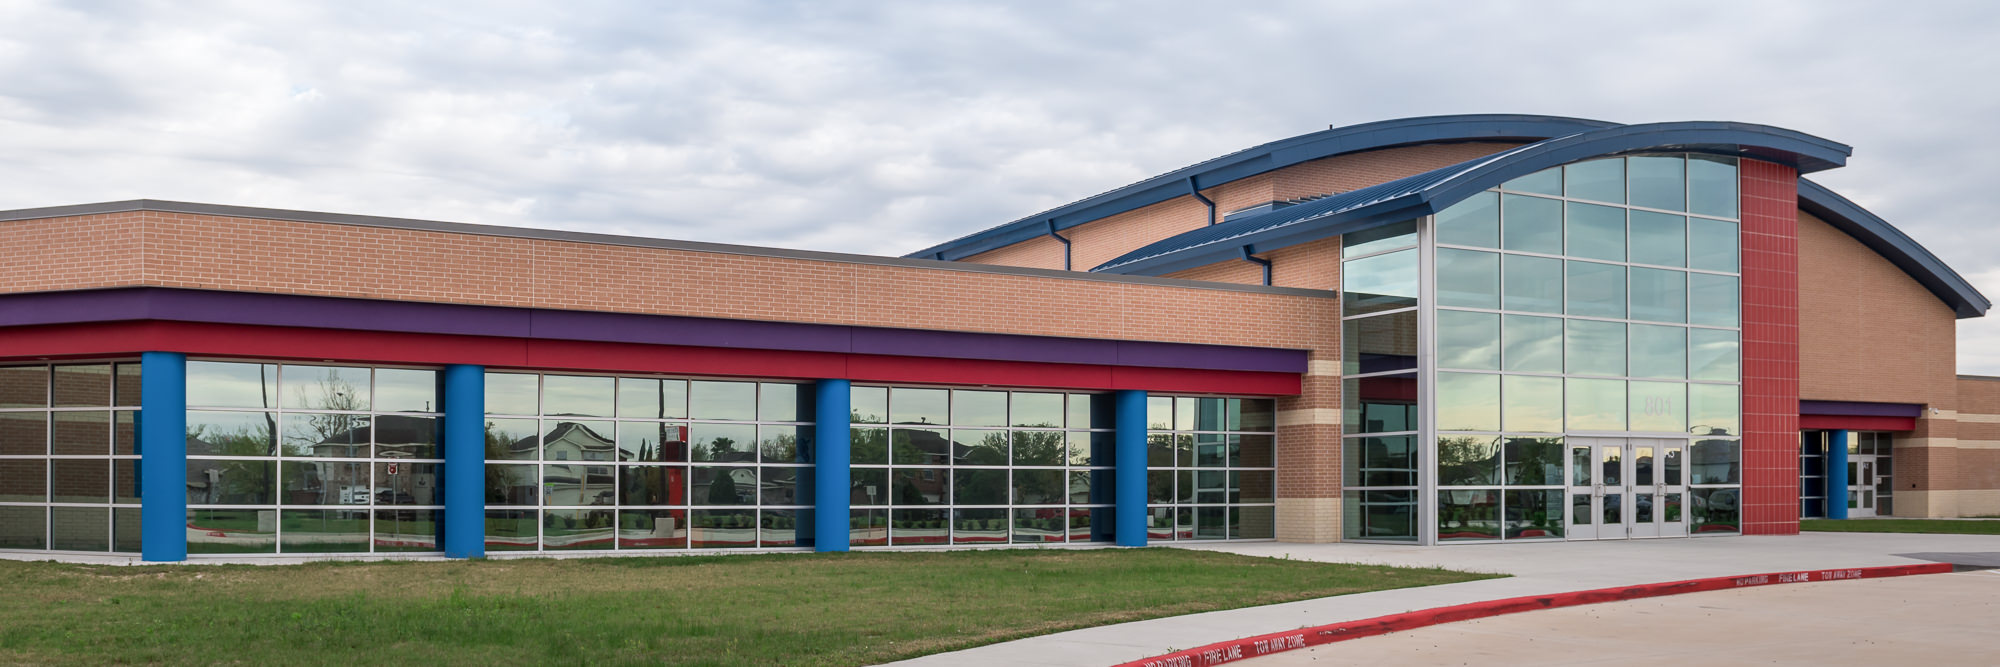 city glass glazing and installation houston texas - school curtain wall